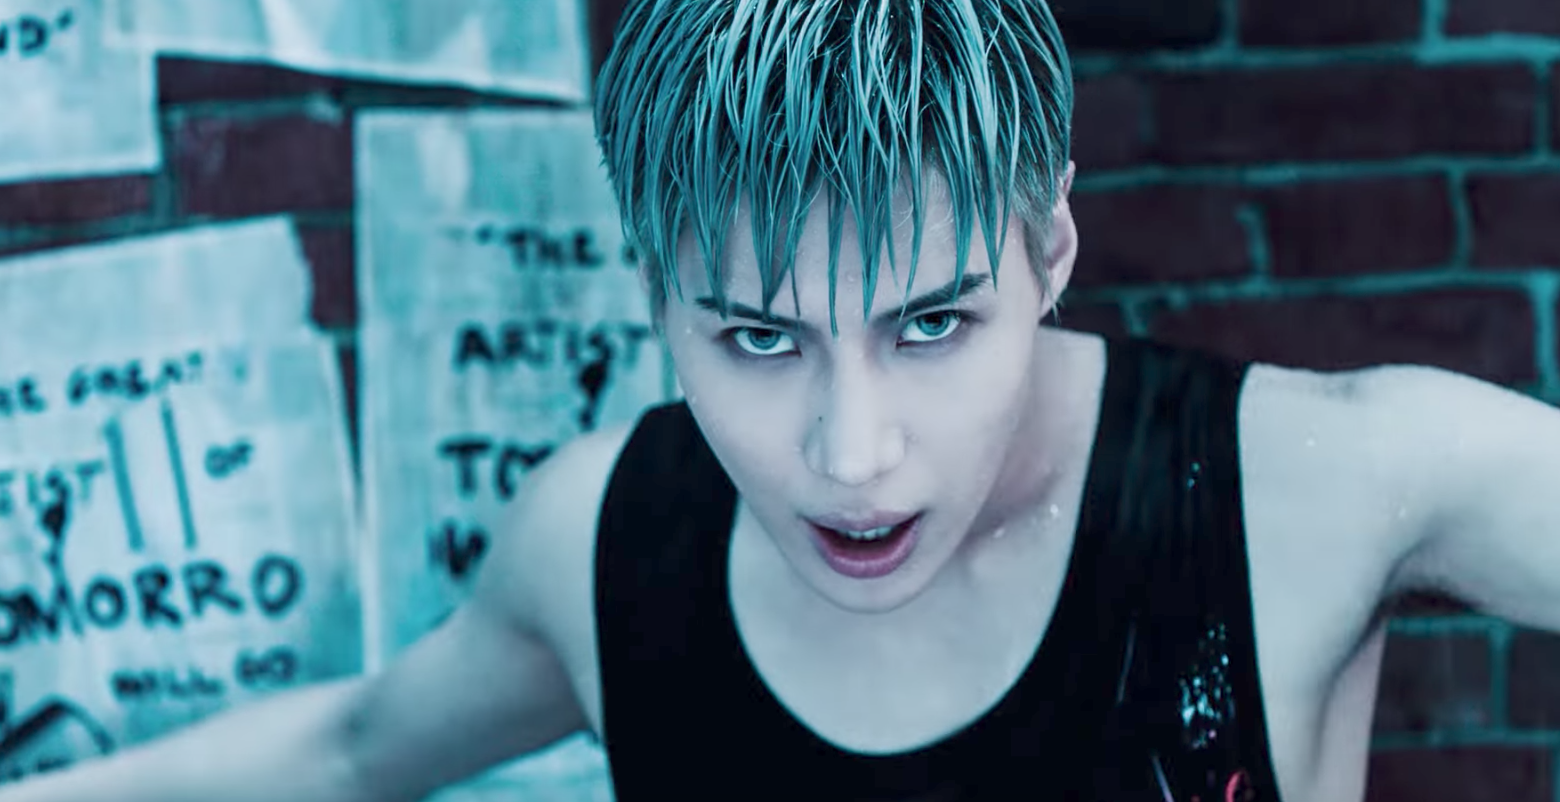 http://www.moonrok.com/taemin-returns-full-force-new-single-move/